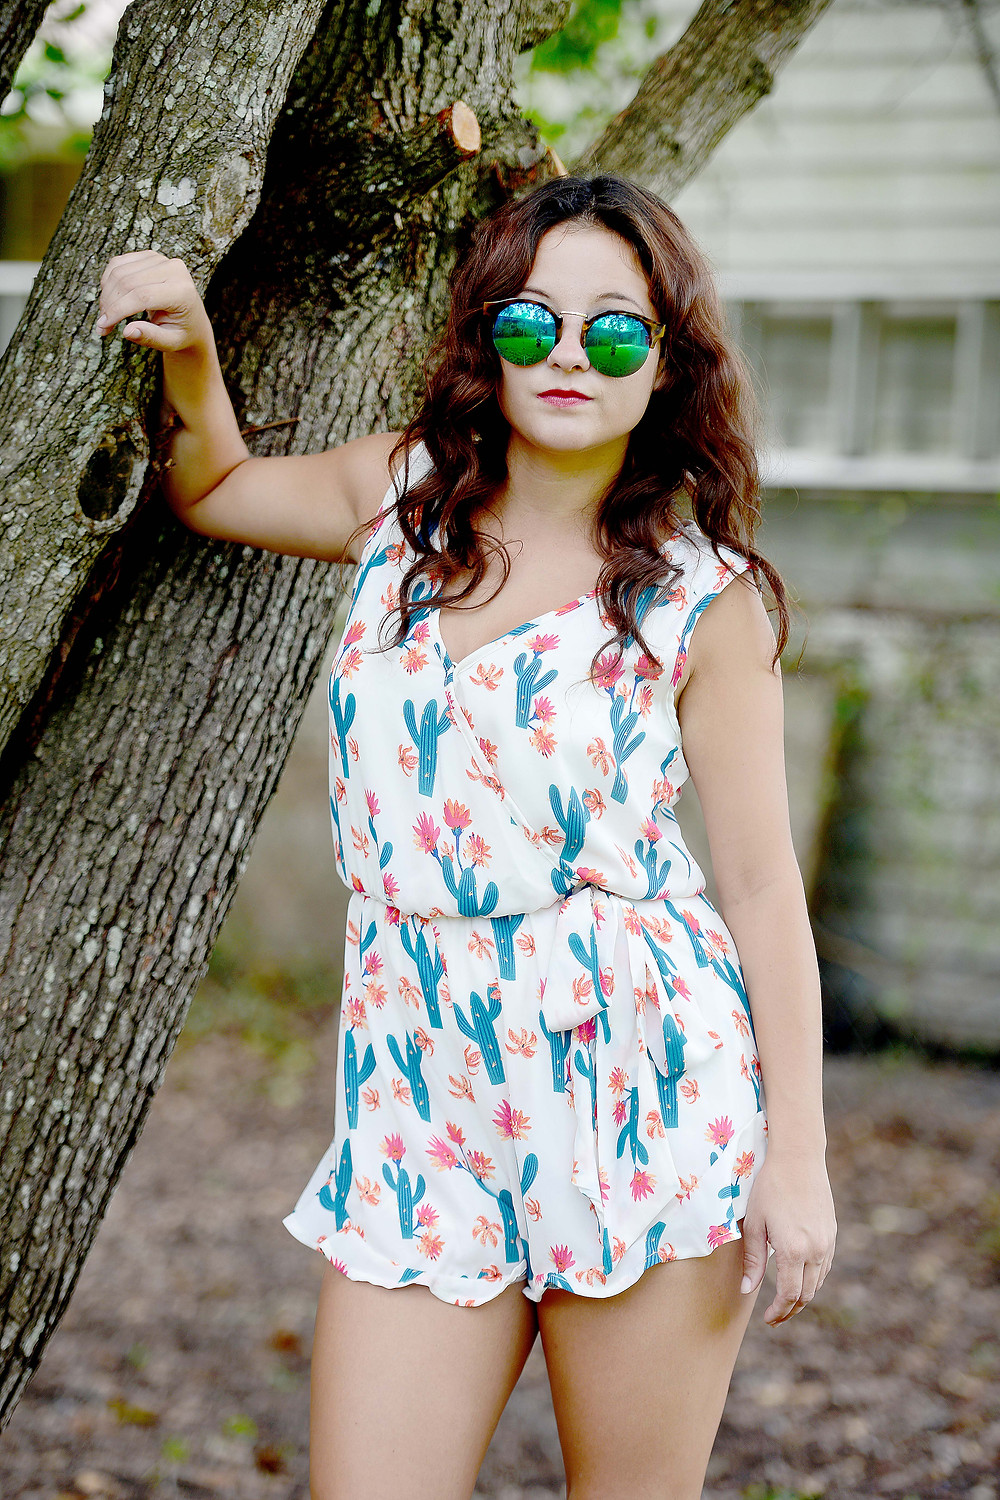 A fashion blogger wears a cactus flower romper with ruffles and sunglasses.